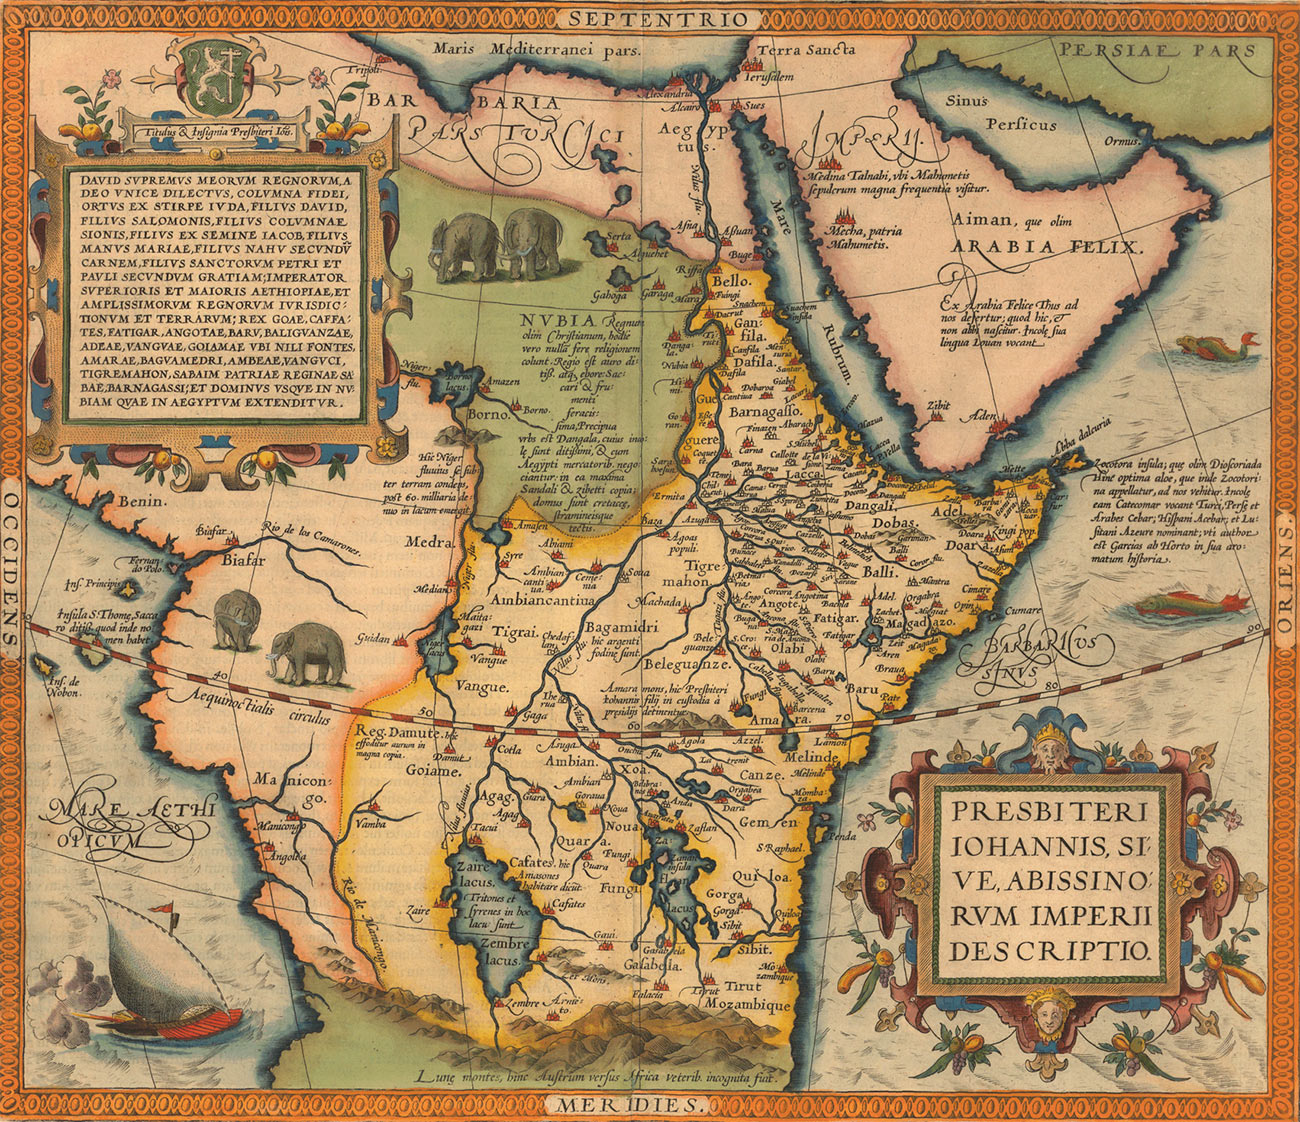 The 'Prester John map' by Abraham Ortelius, 1527-1598.